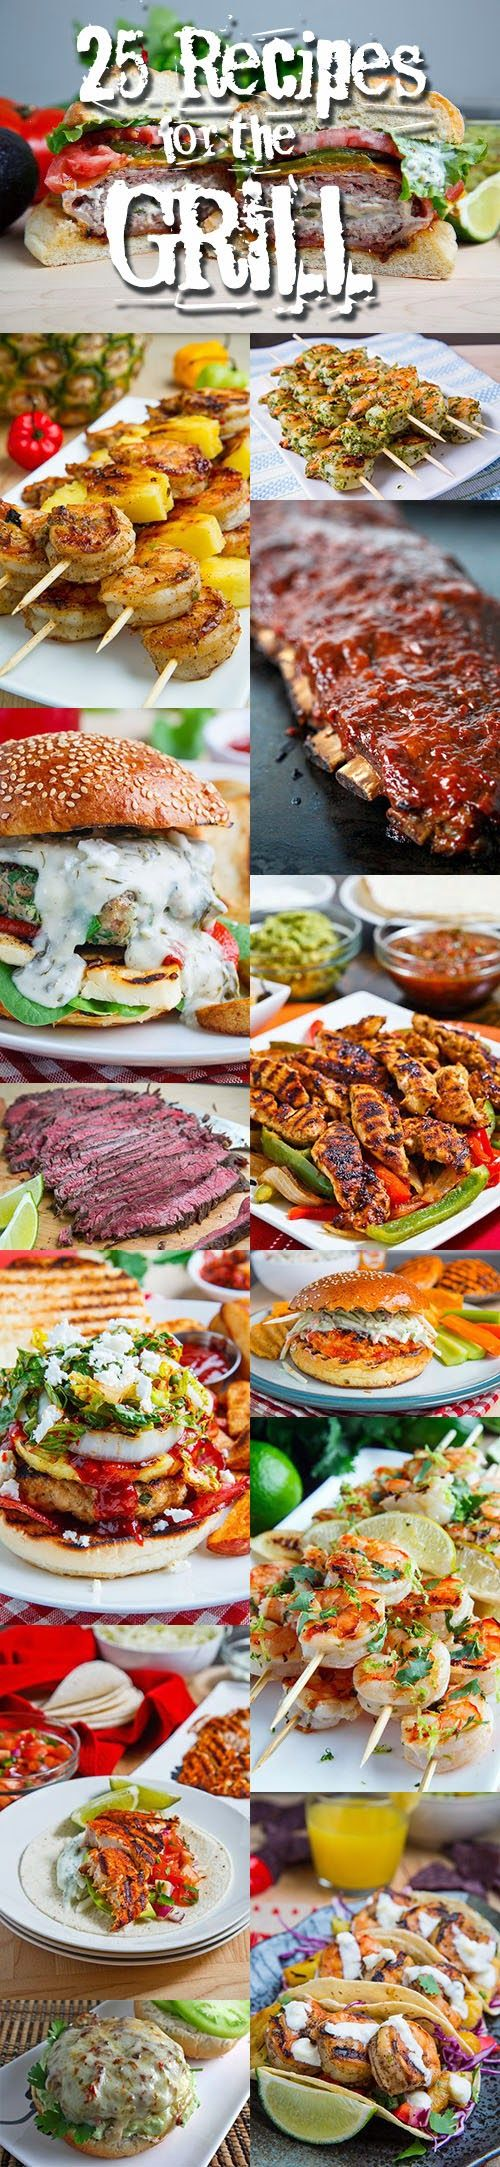 25 Recipes for the Grill – Can't wait to grill